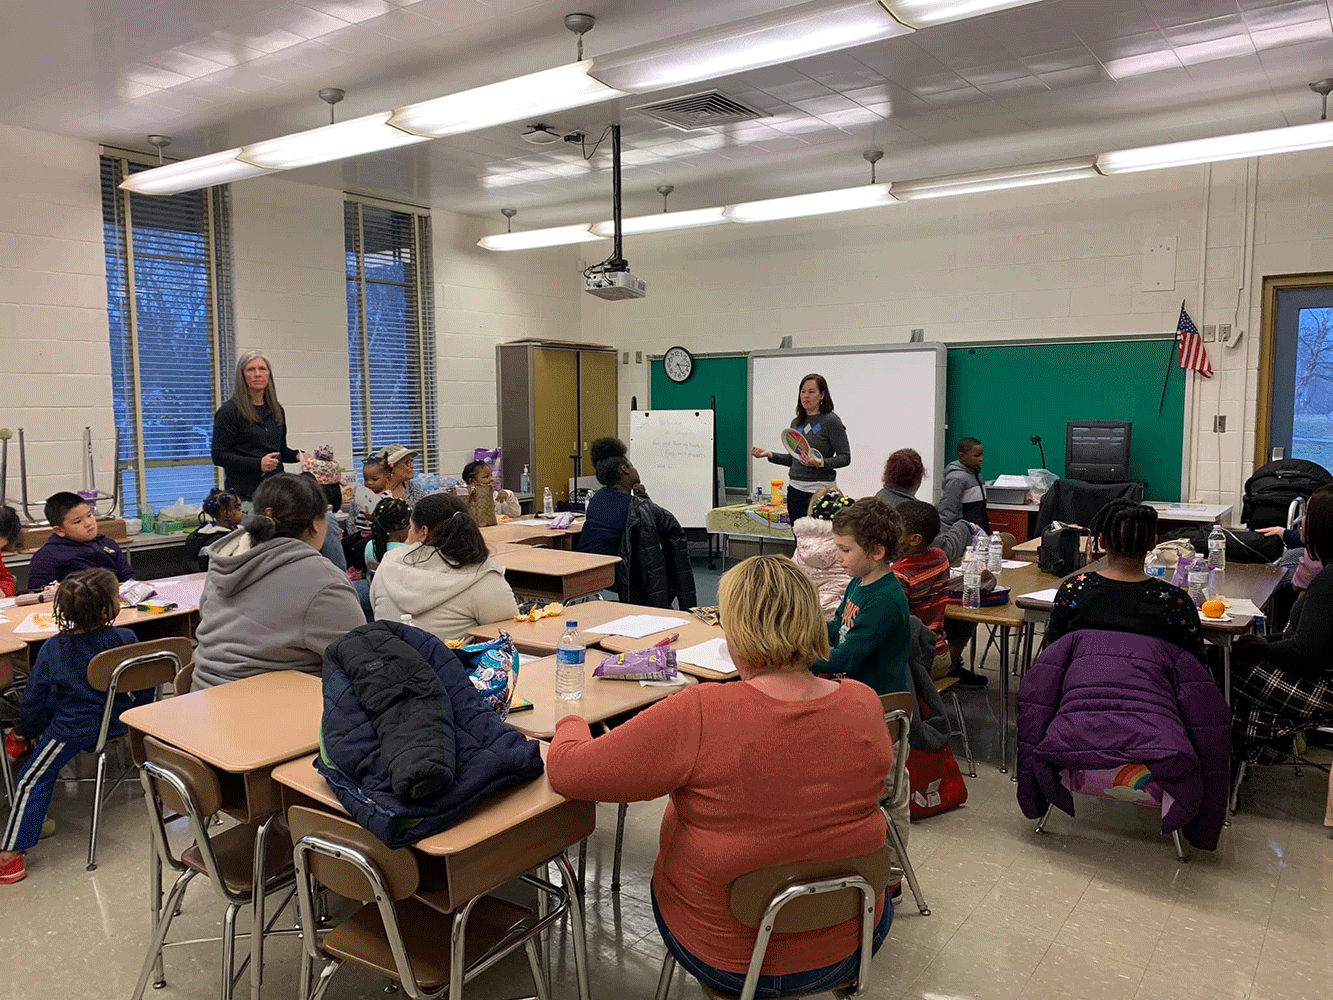 Food Advocacy Team Visits Halls Cross Roads Elementary